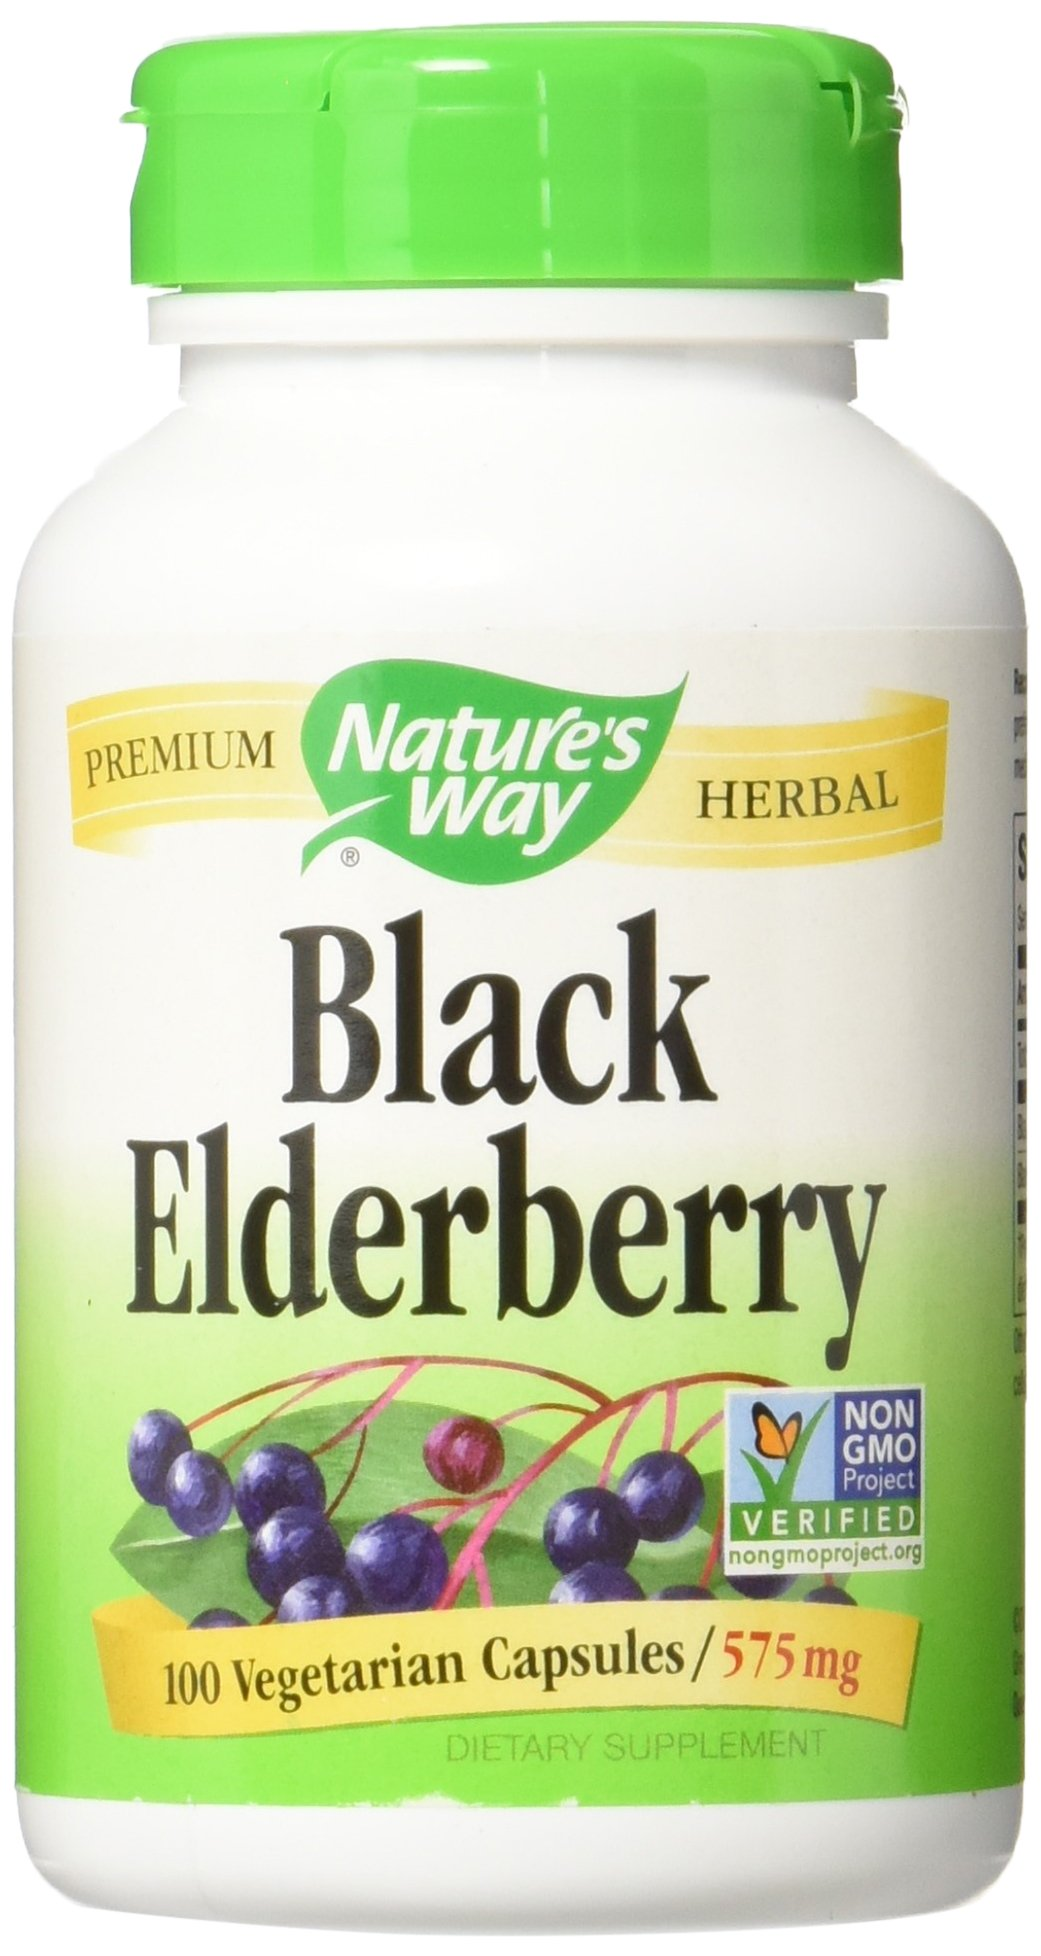 Nature's Way Black Elderberry 575 mg, 100 Vcaps, Pack of 3